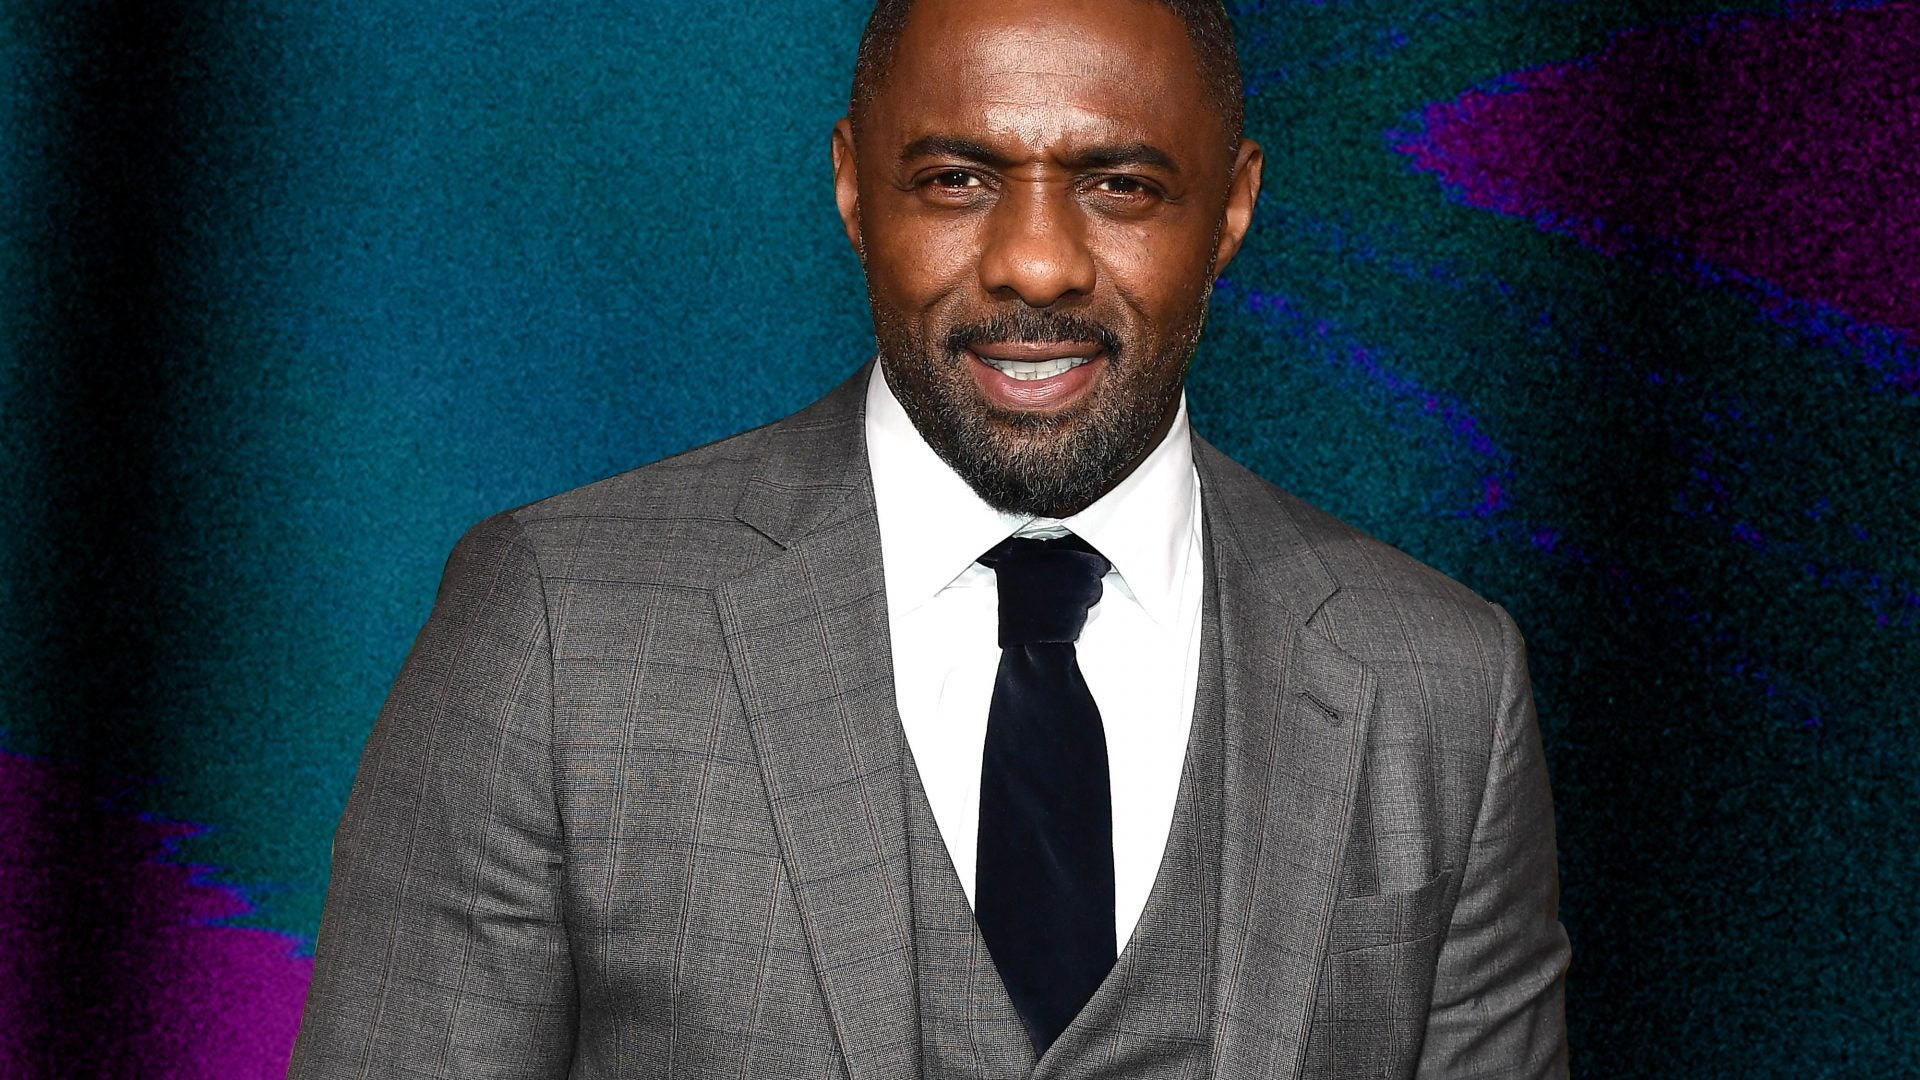 EXCLUSIVE: You'll Never Guess Idris Elba's Top Three Vacations of All Time